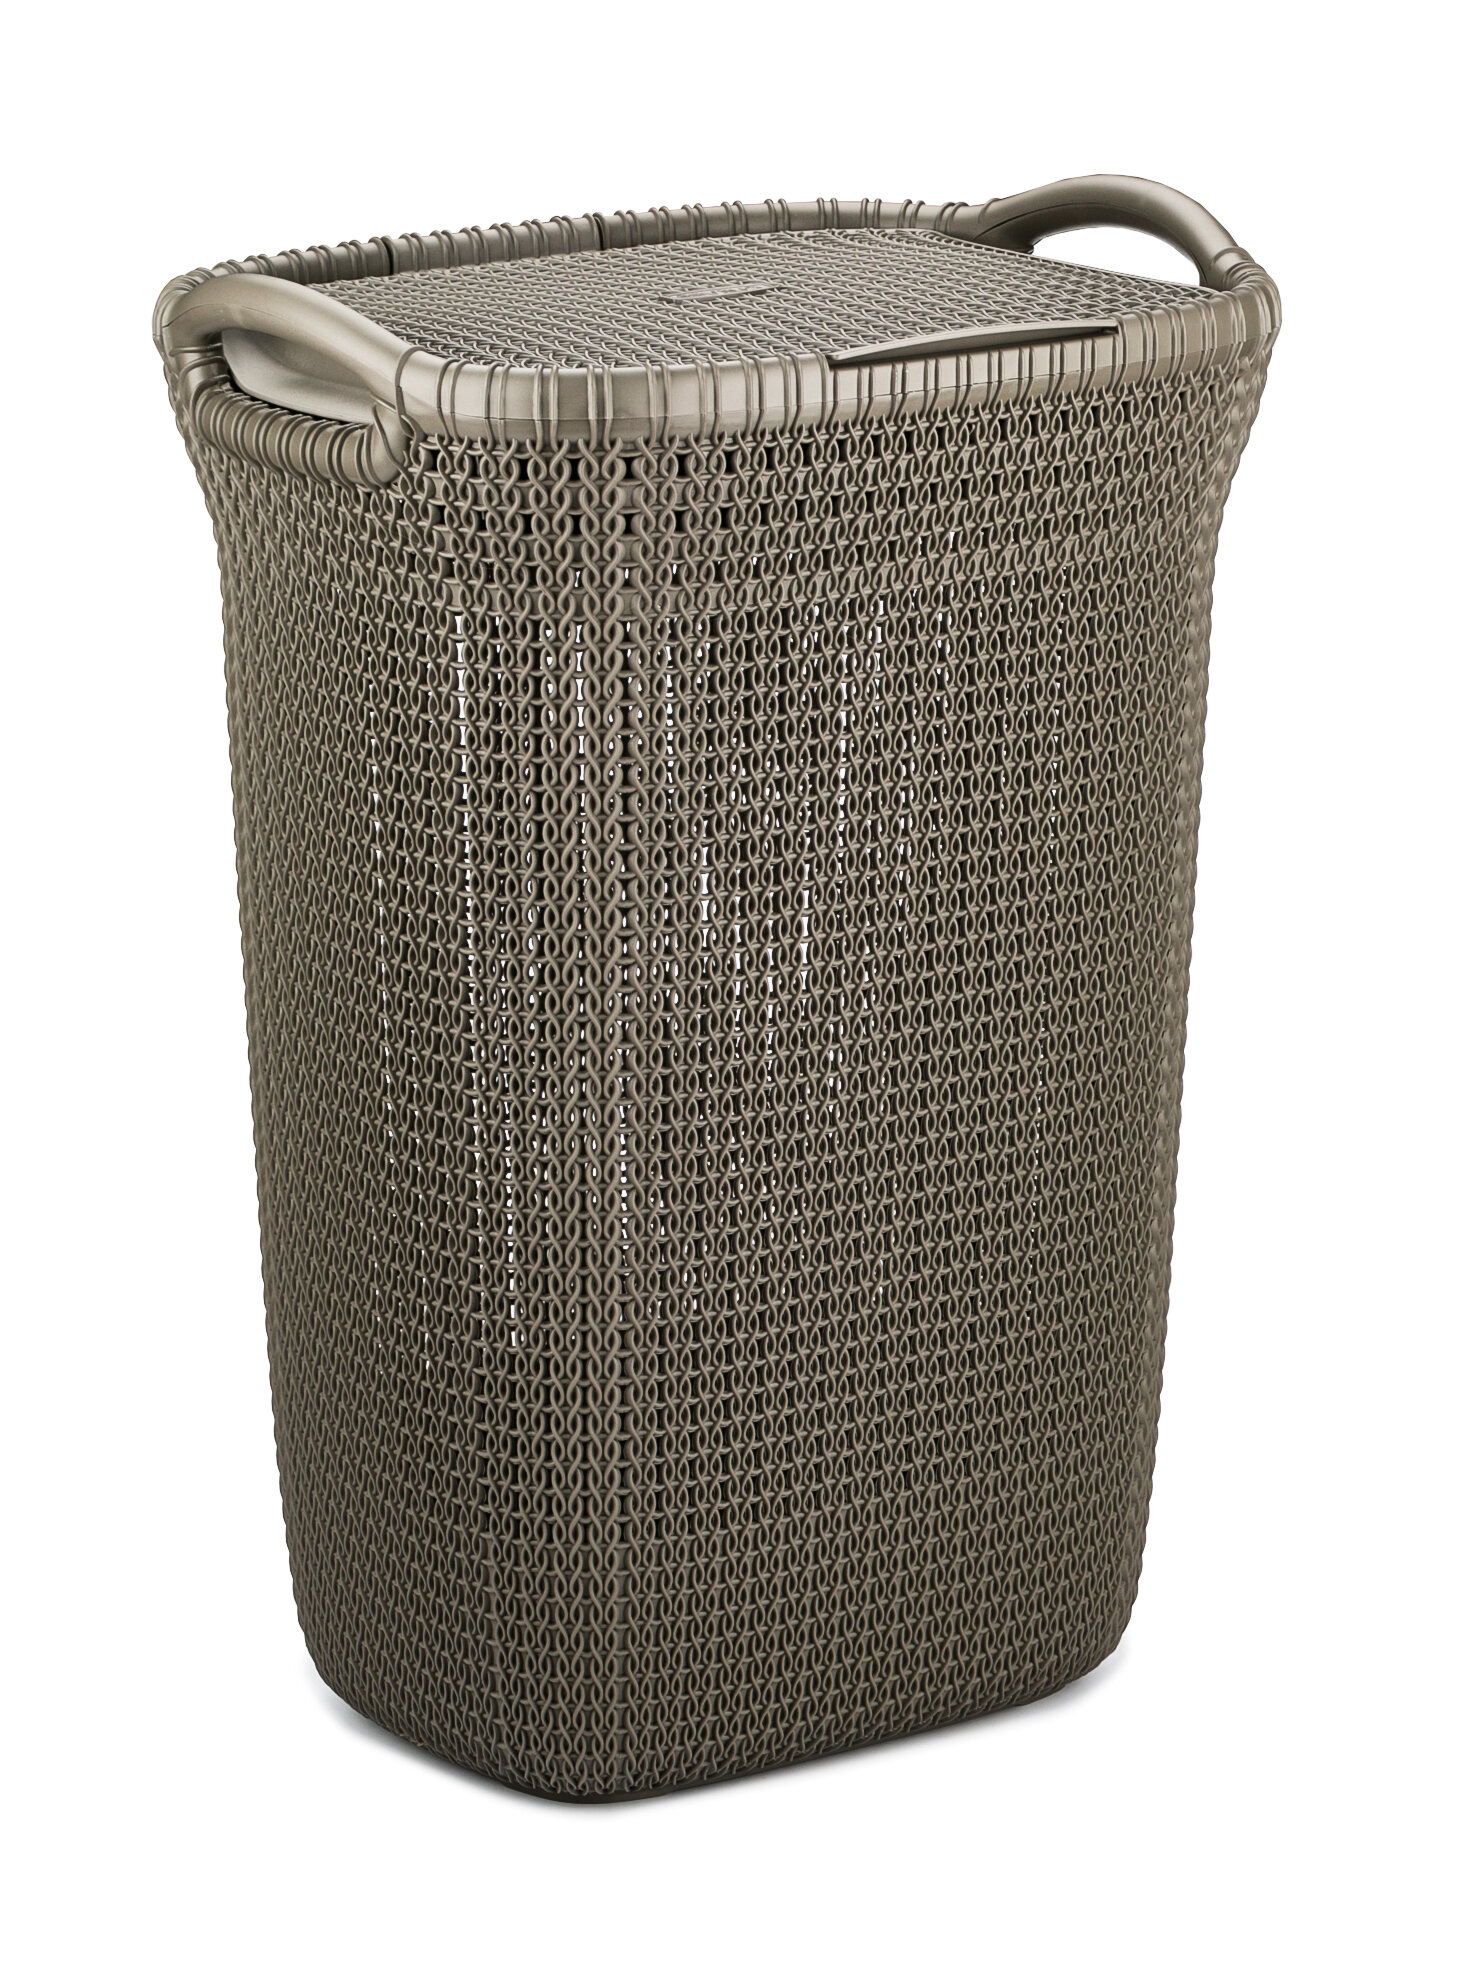 Laundry basket CURVER KNIT 57 L dark brown brown l